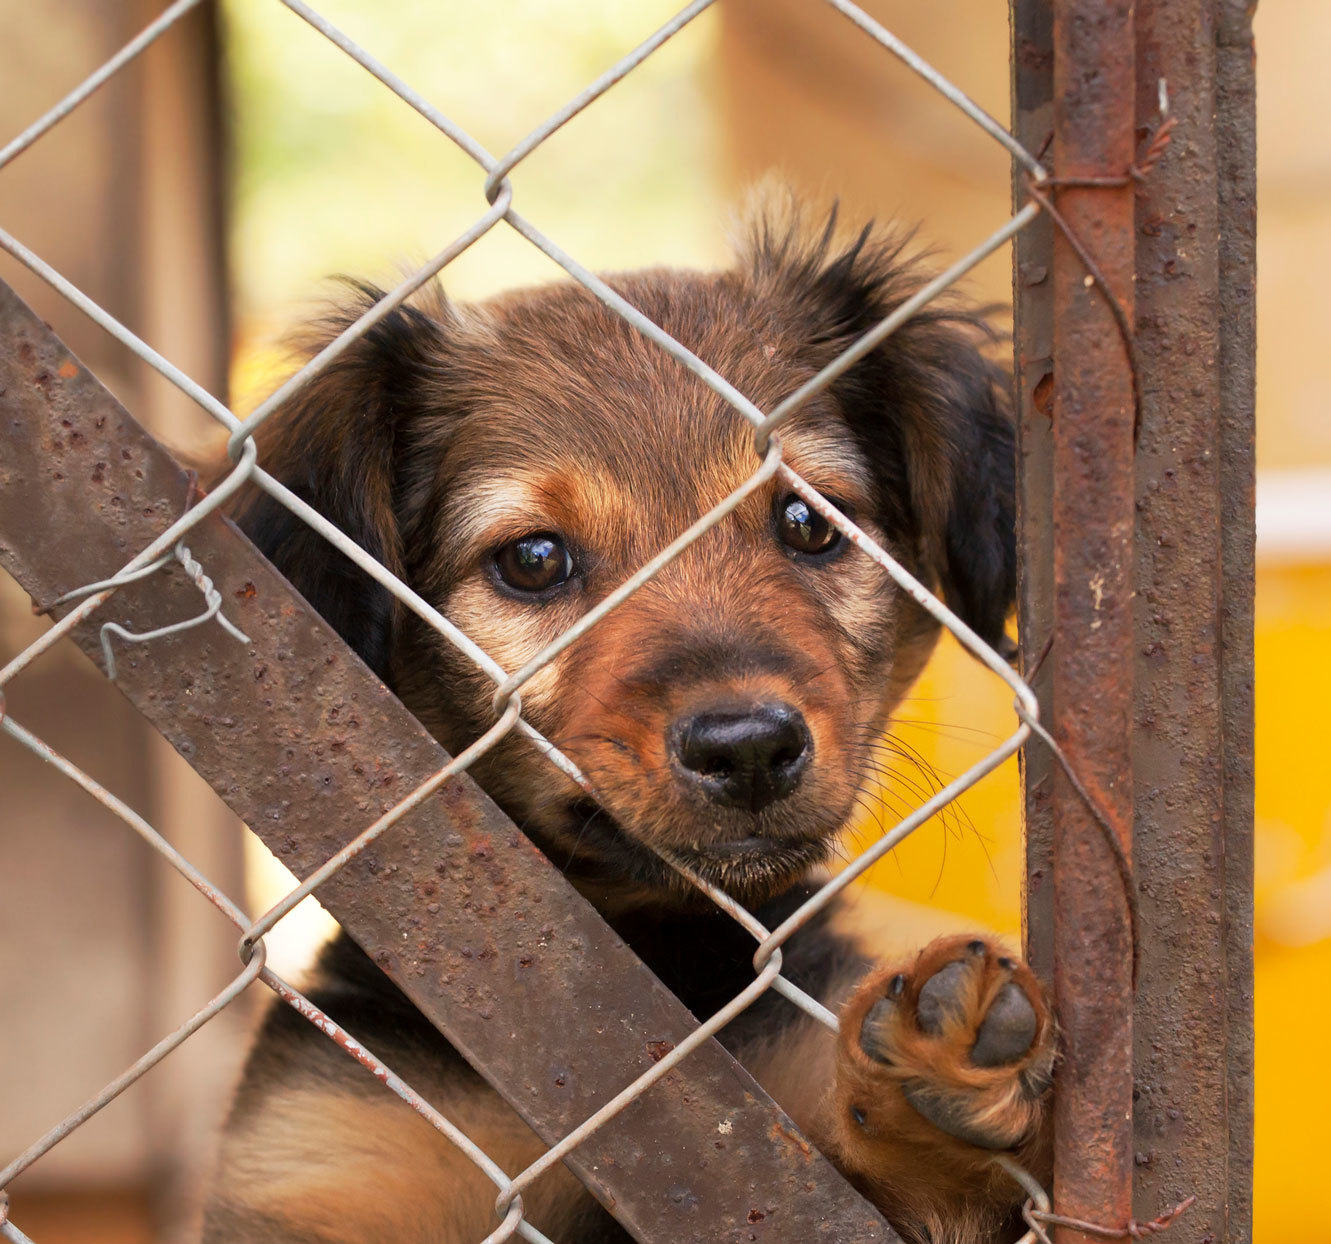 Feeling Lonely? There's Never Been a Better Time to Foster or Adopt a Pet